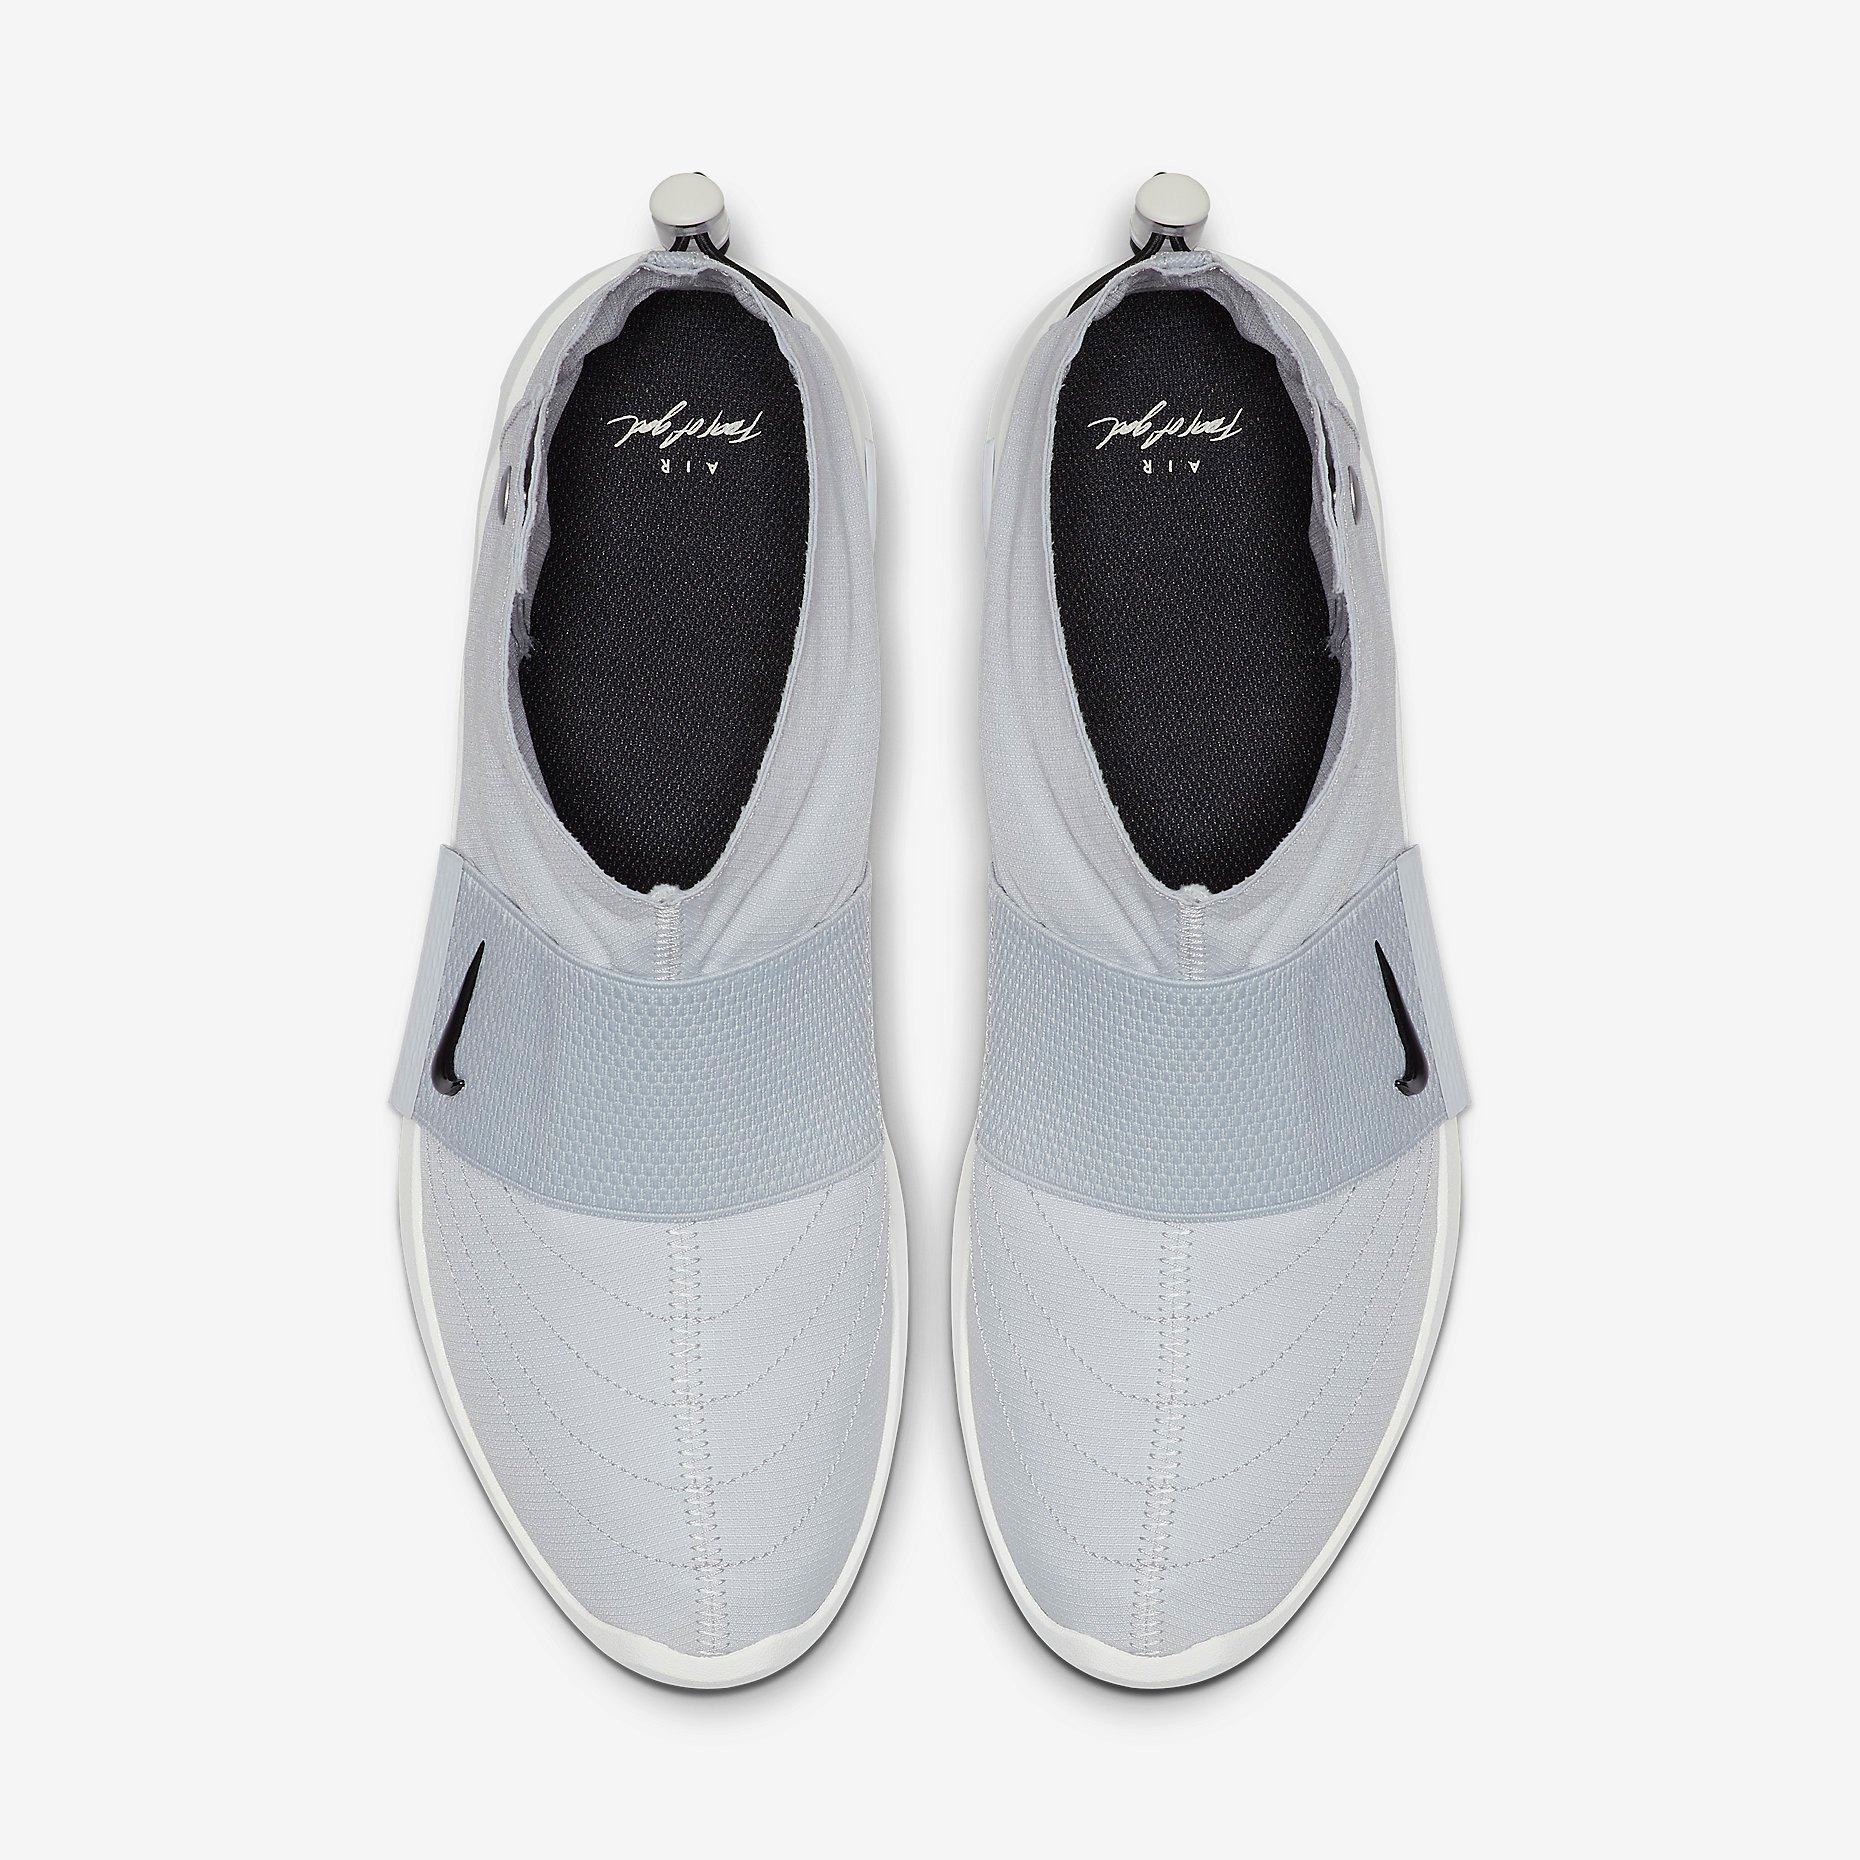 Fear of God x Nike Moccasin Pure Platinum 2